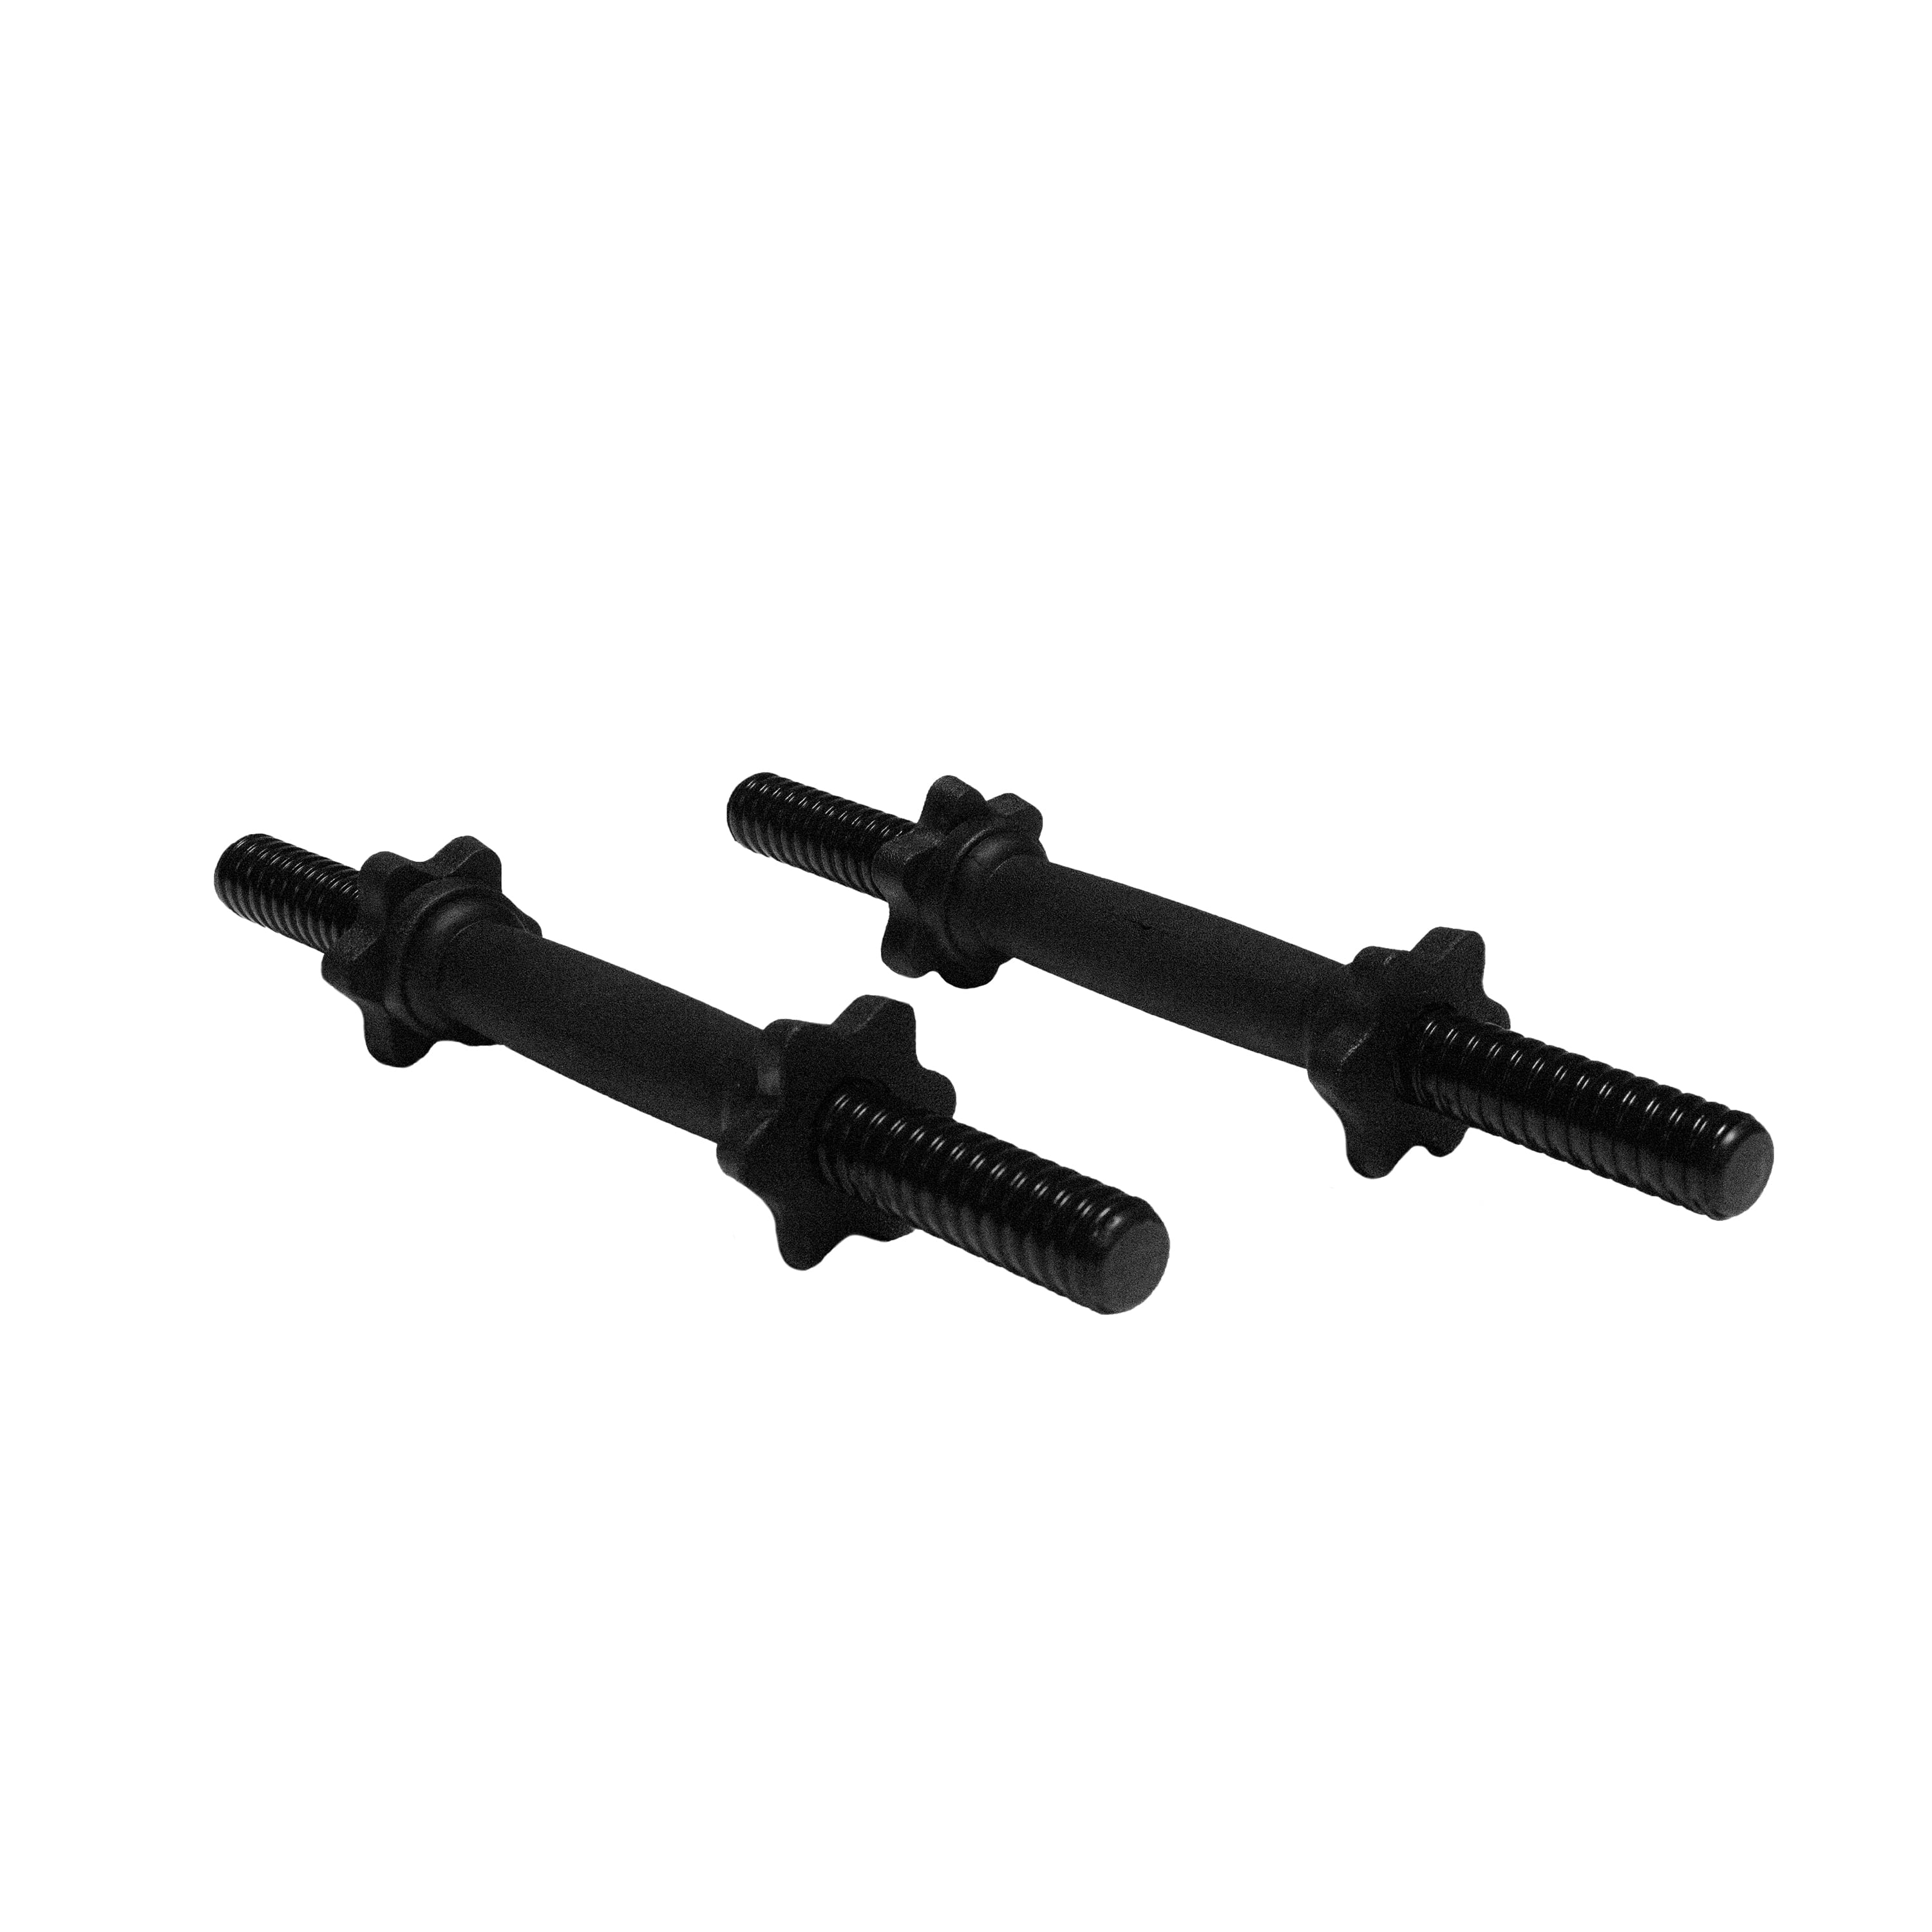 """New /& Fast Free Shipping! CAP Standard Dumbbell Handles 14/"""" Threaded Set of 2"""